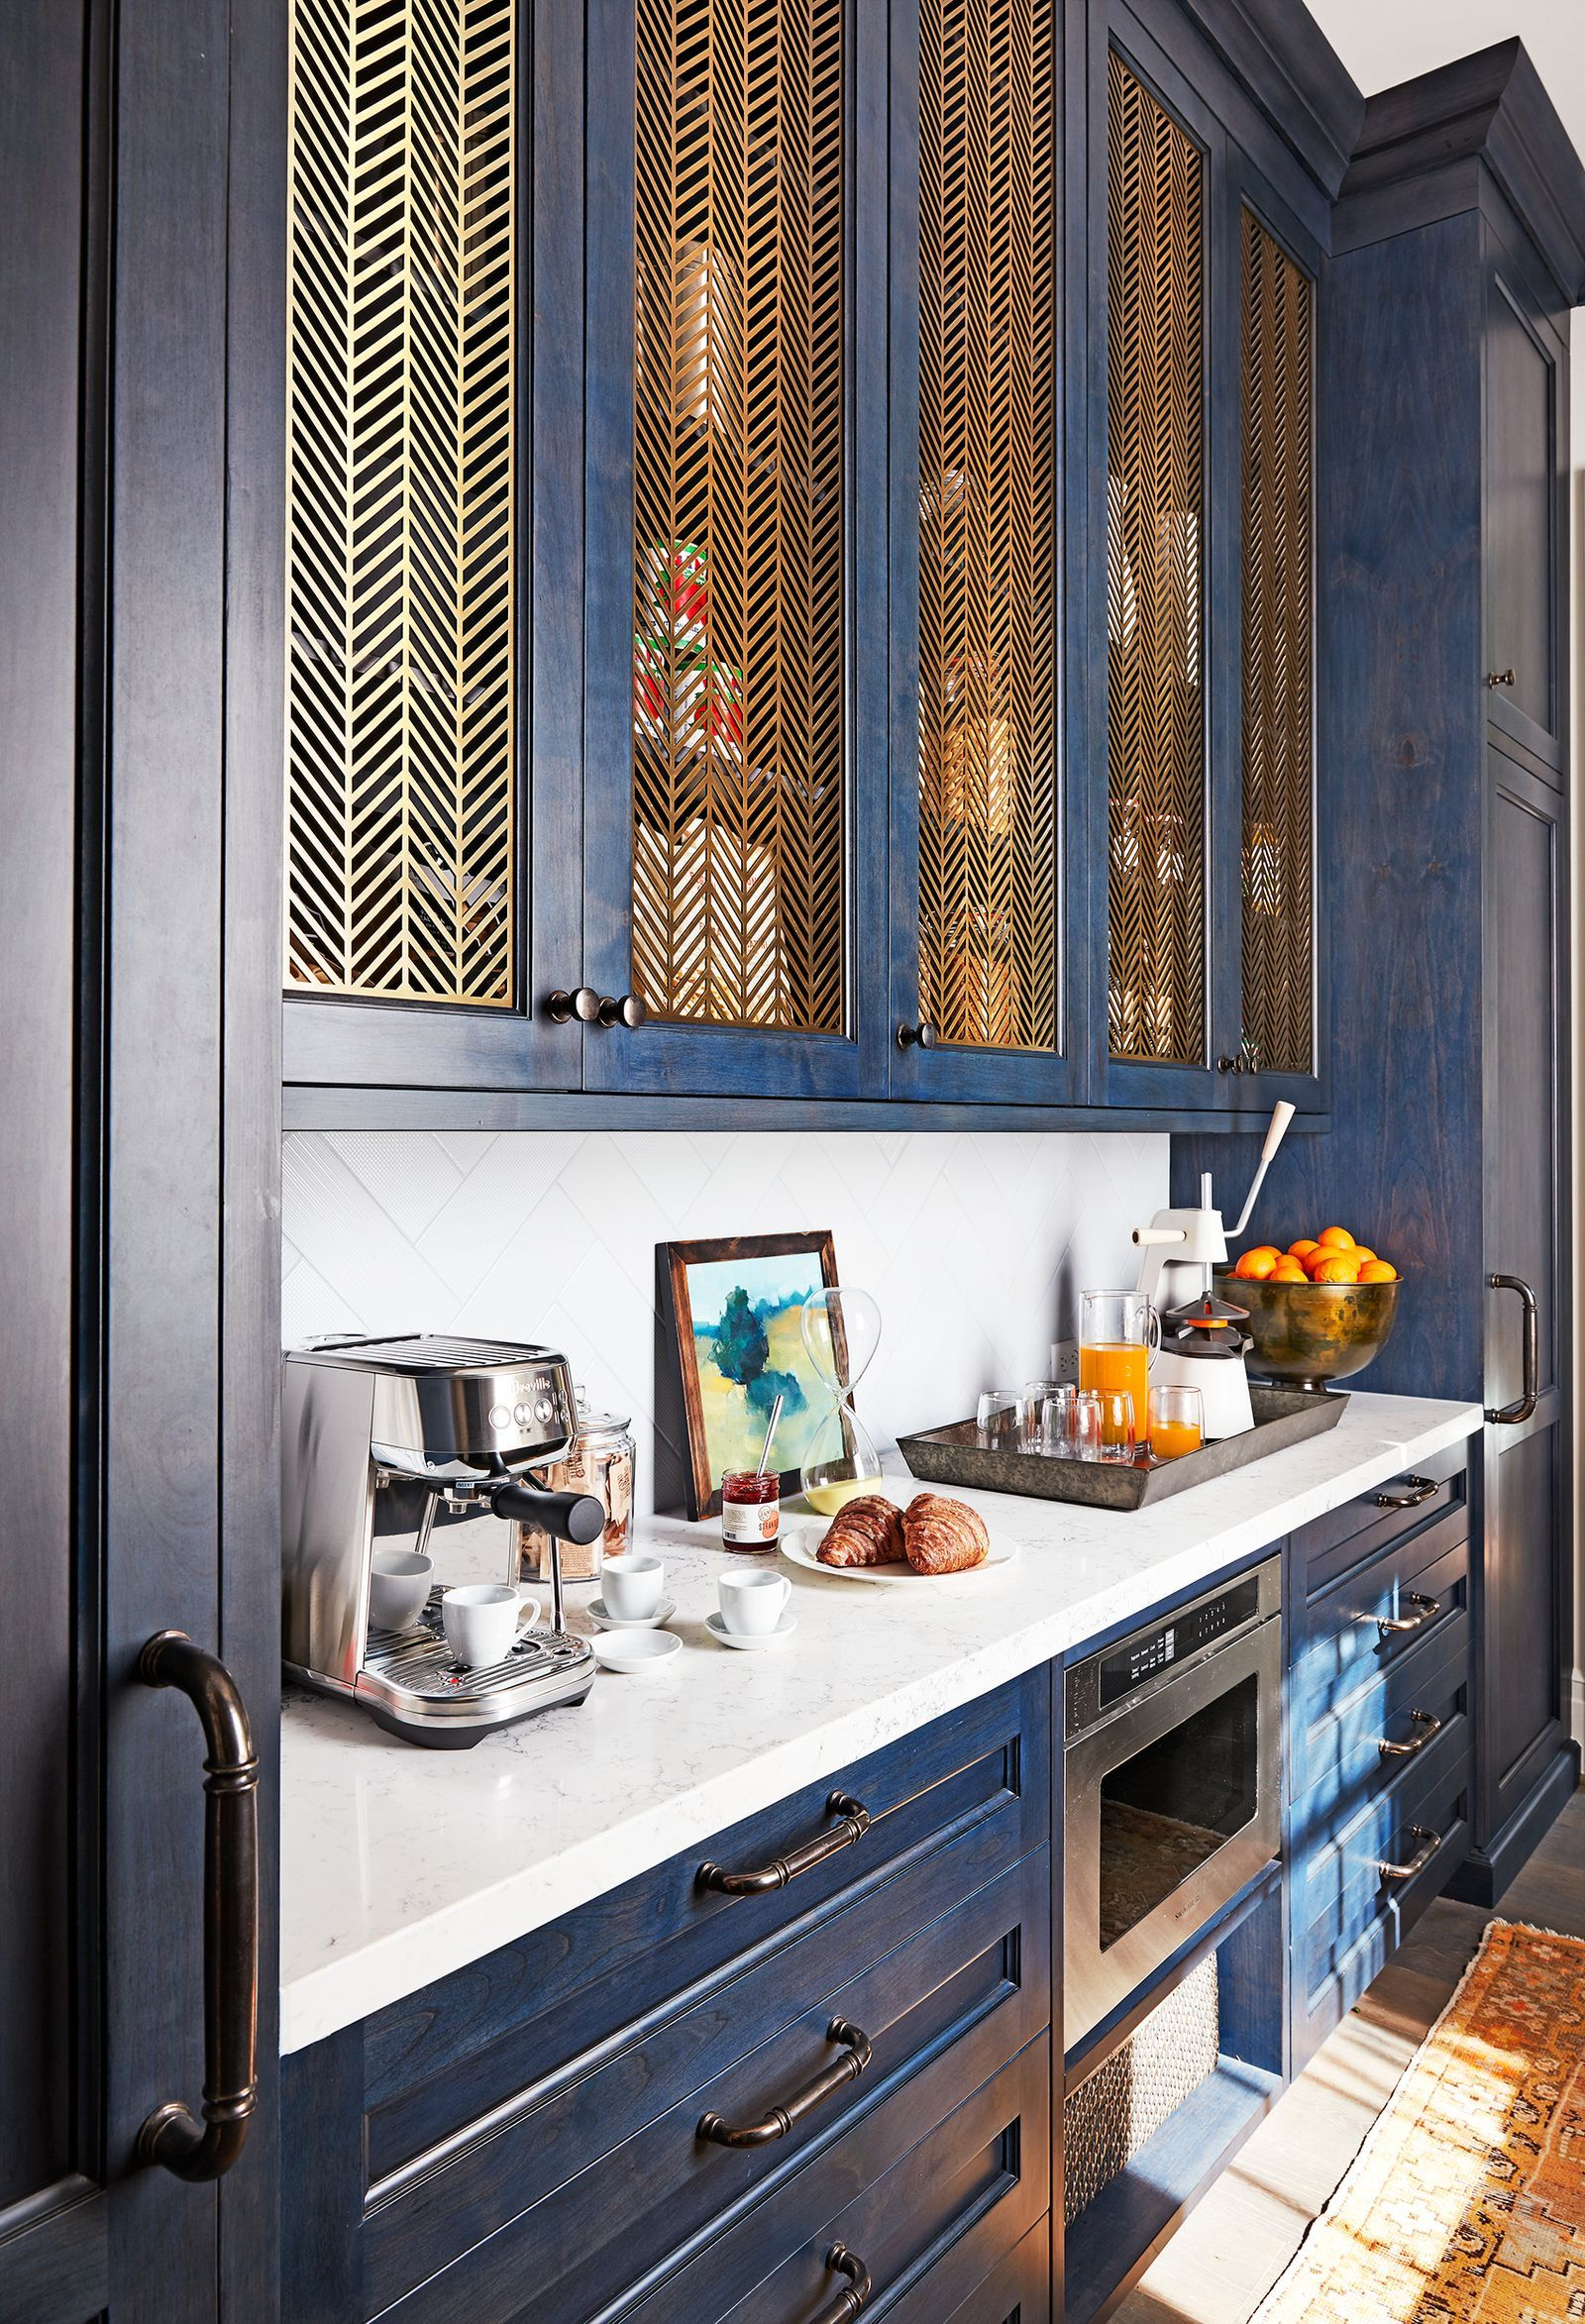 11 Coffee Bar Ideas That Will Make It So Much Easier To Get Out Of Bed In 2020 Kitchen Cabinet Styles Kitchen Cabinet Trends Kitchen Remodel